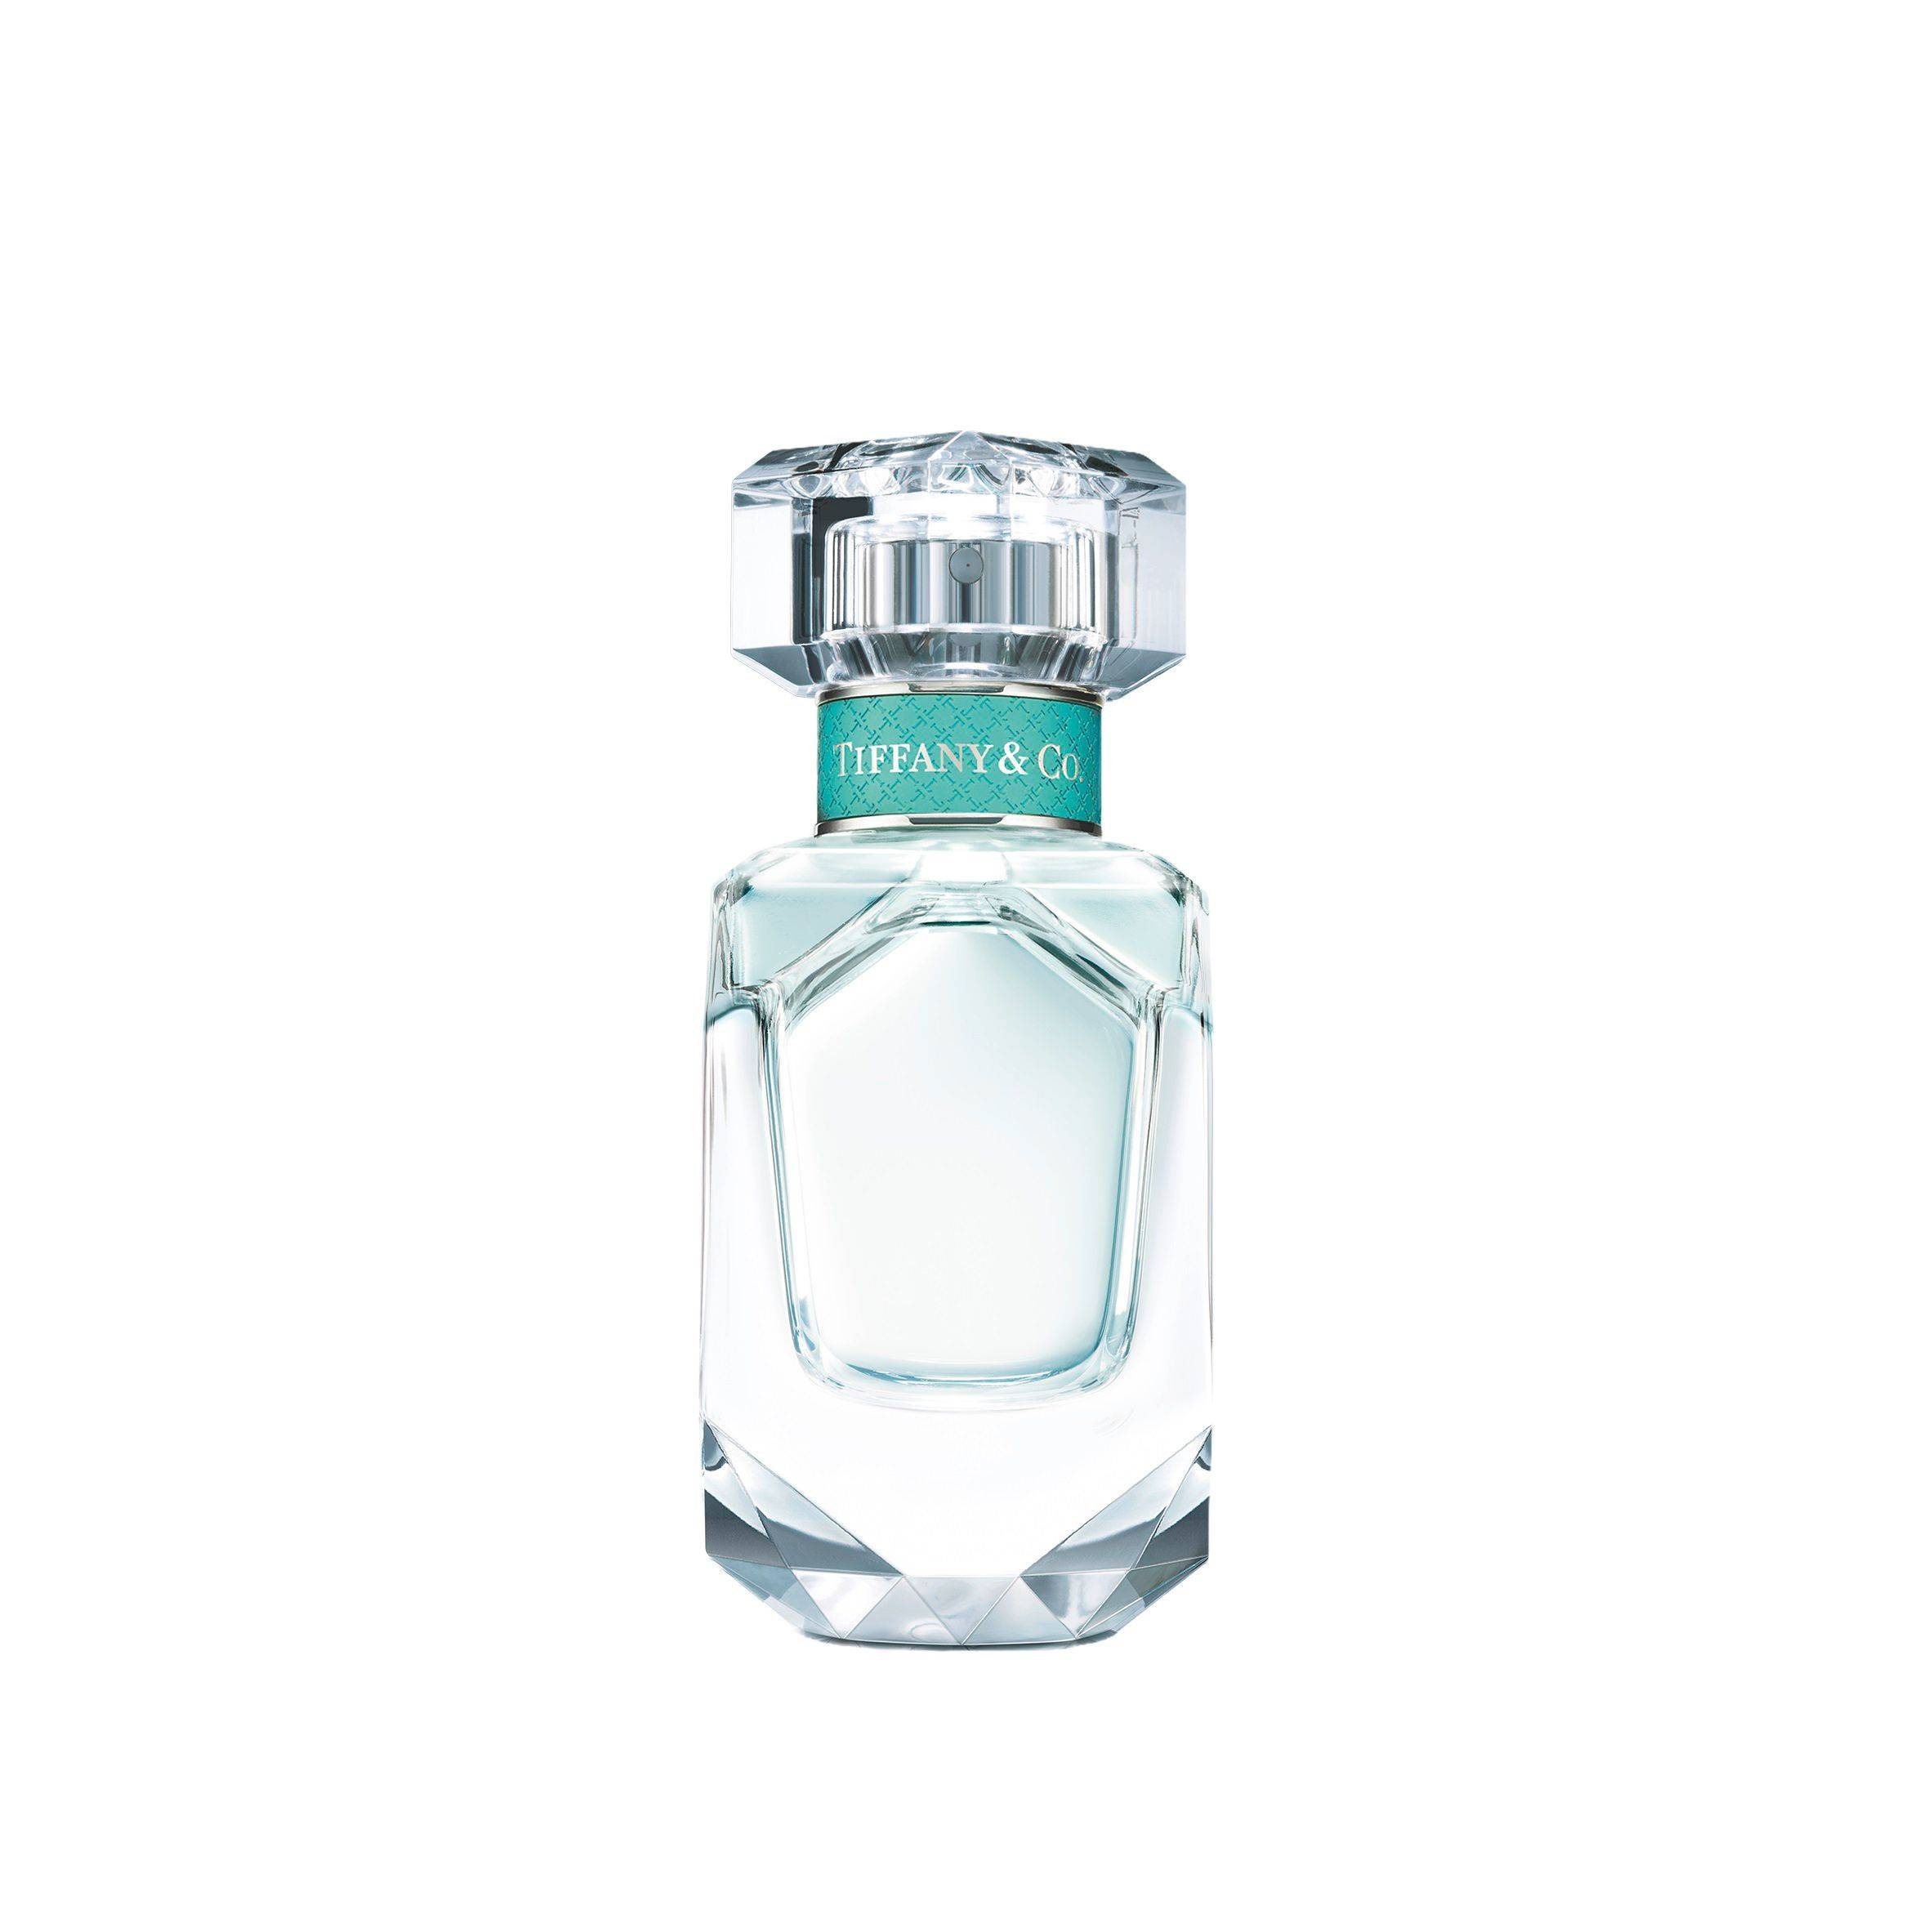 Tiffany & Co. Eau De Parfum 30 ml